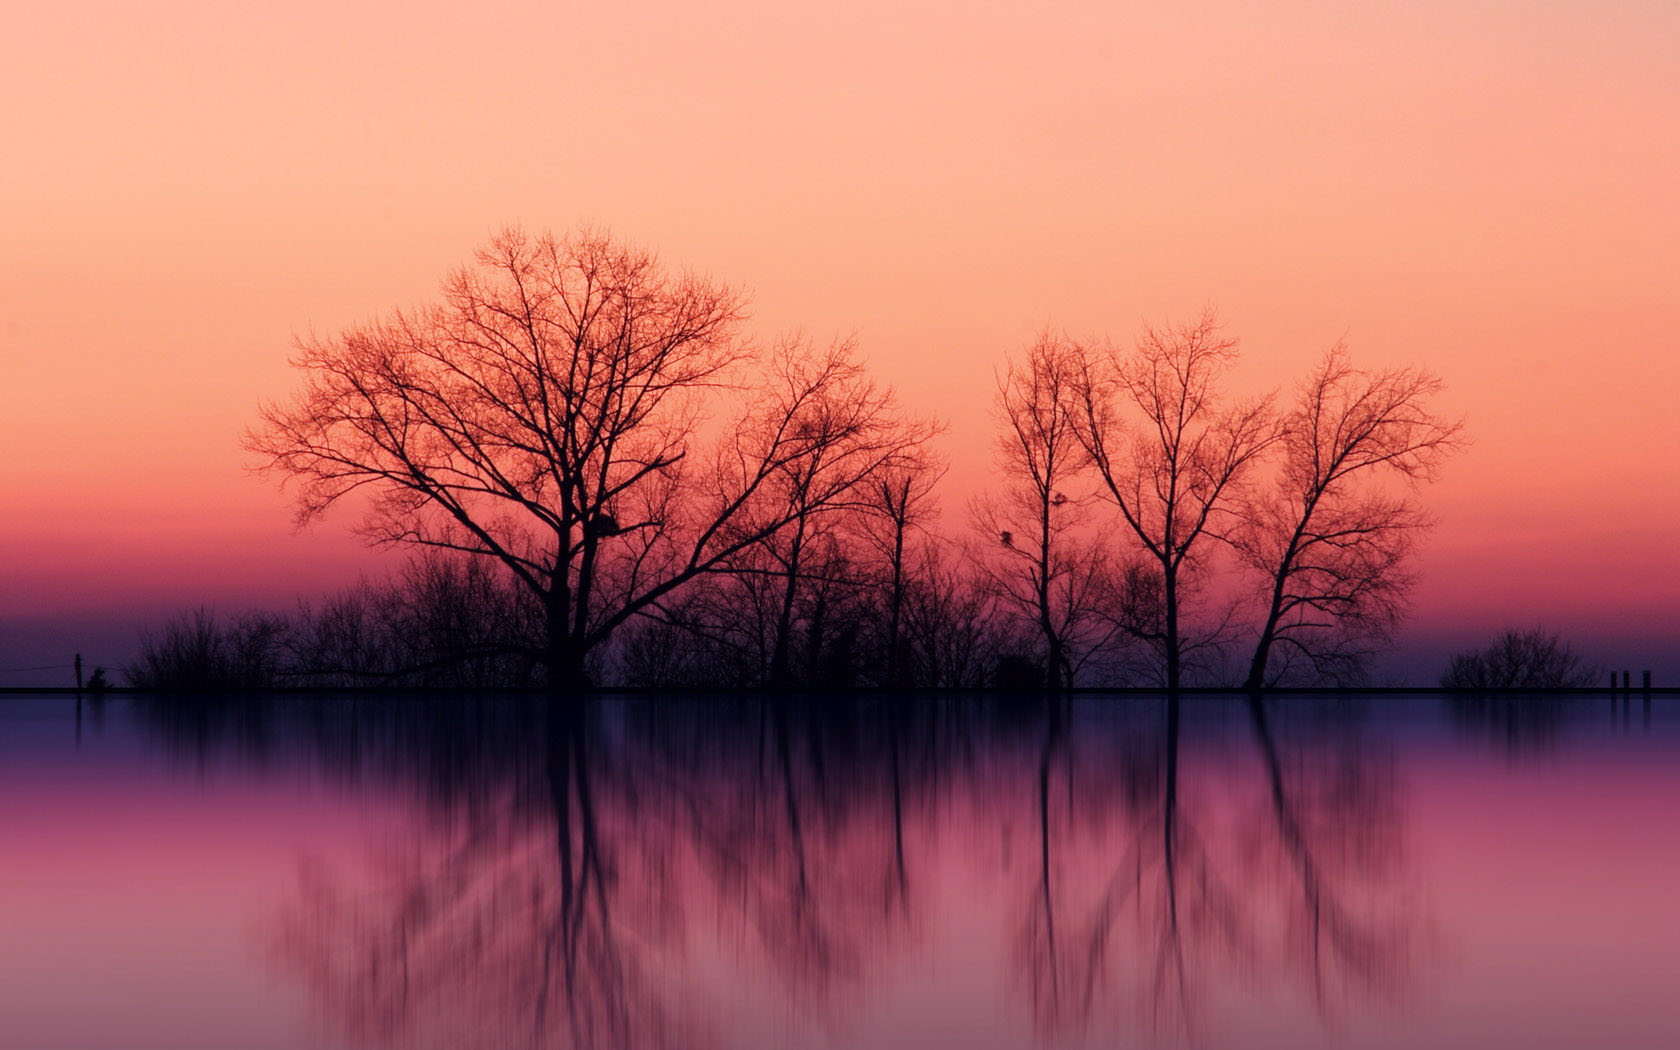 nature pink background